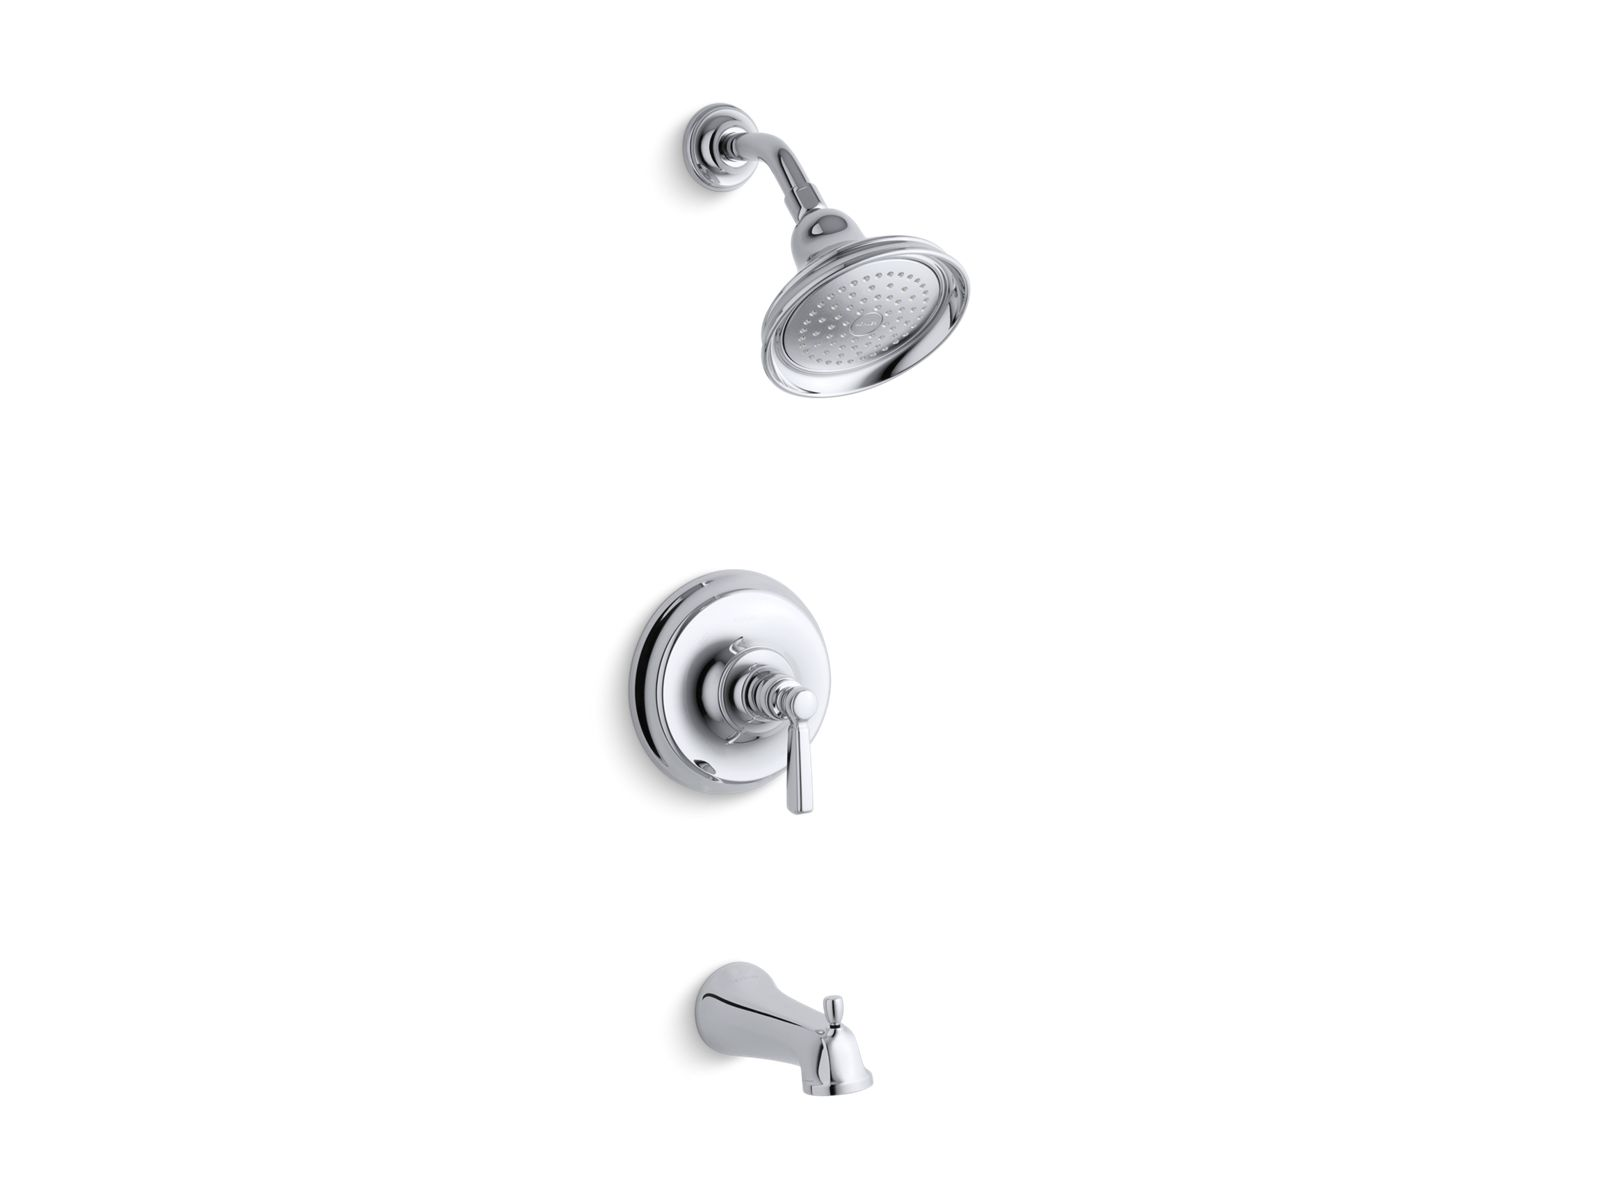 K T10581 4 | Bancroft Rite Temp Bath And Shower Faucet Trim | KOHLER